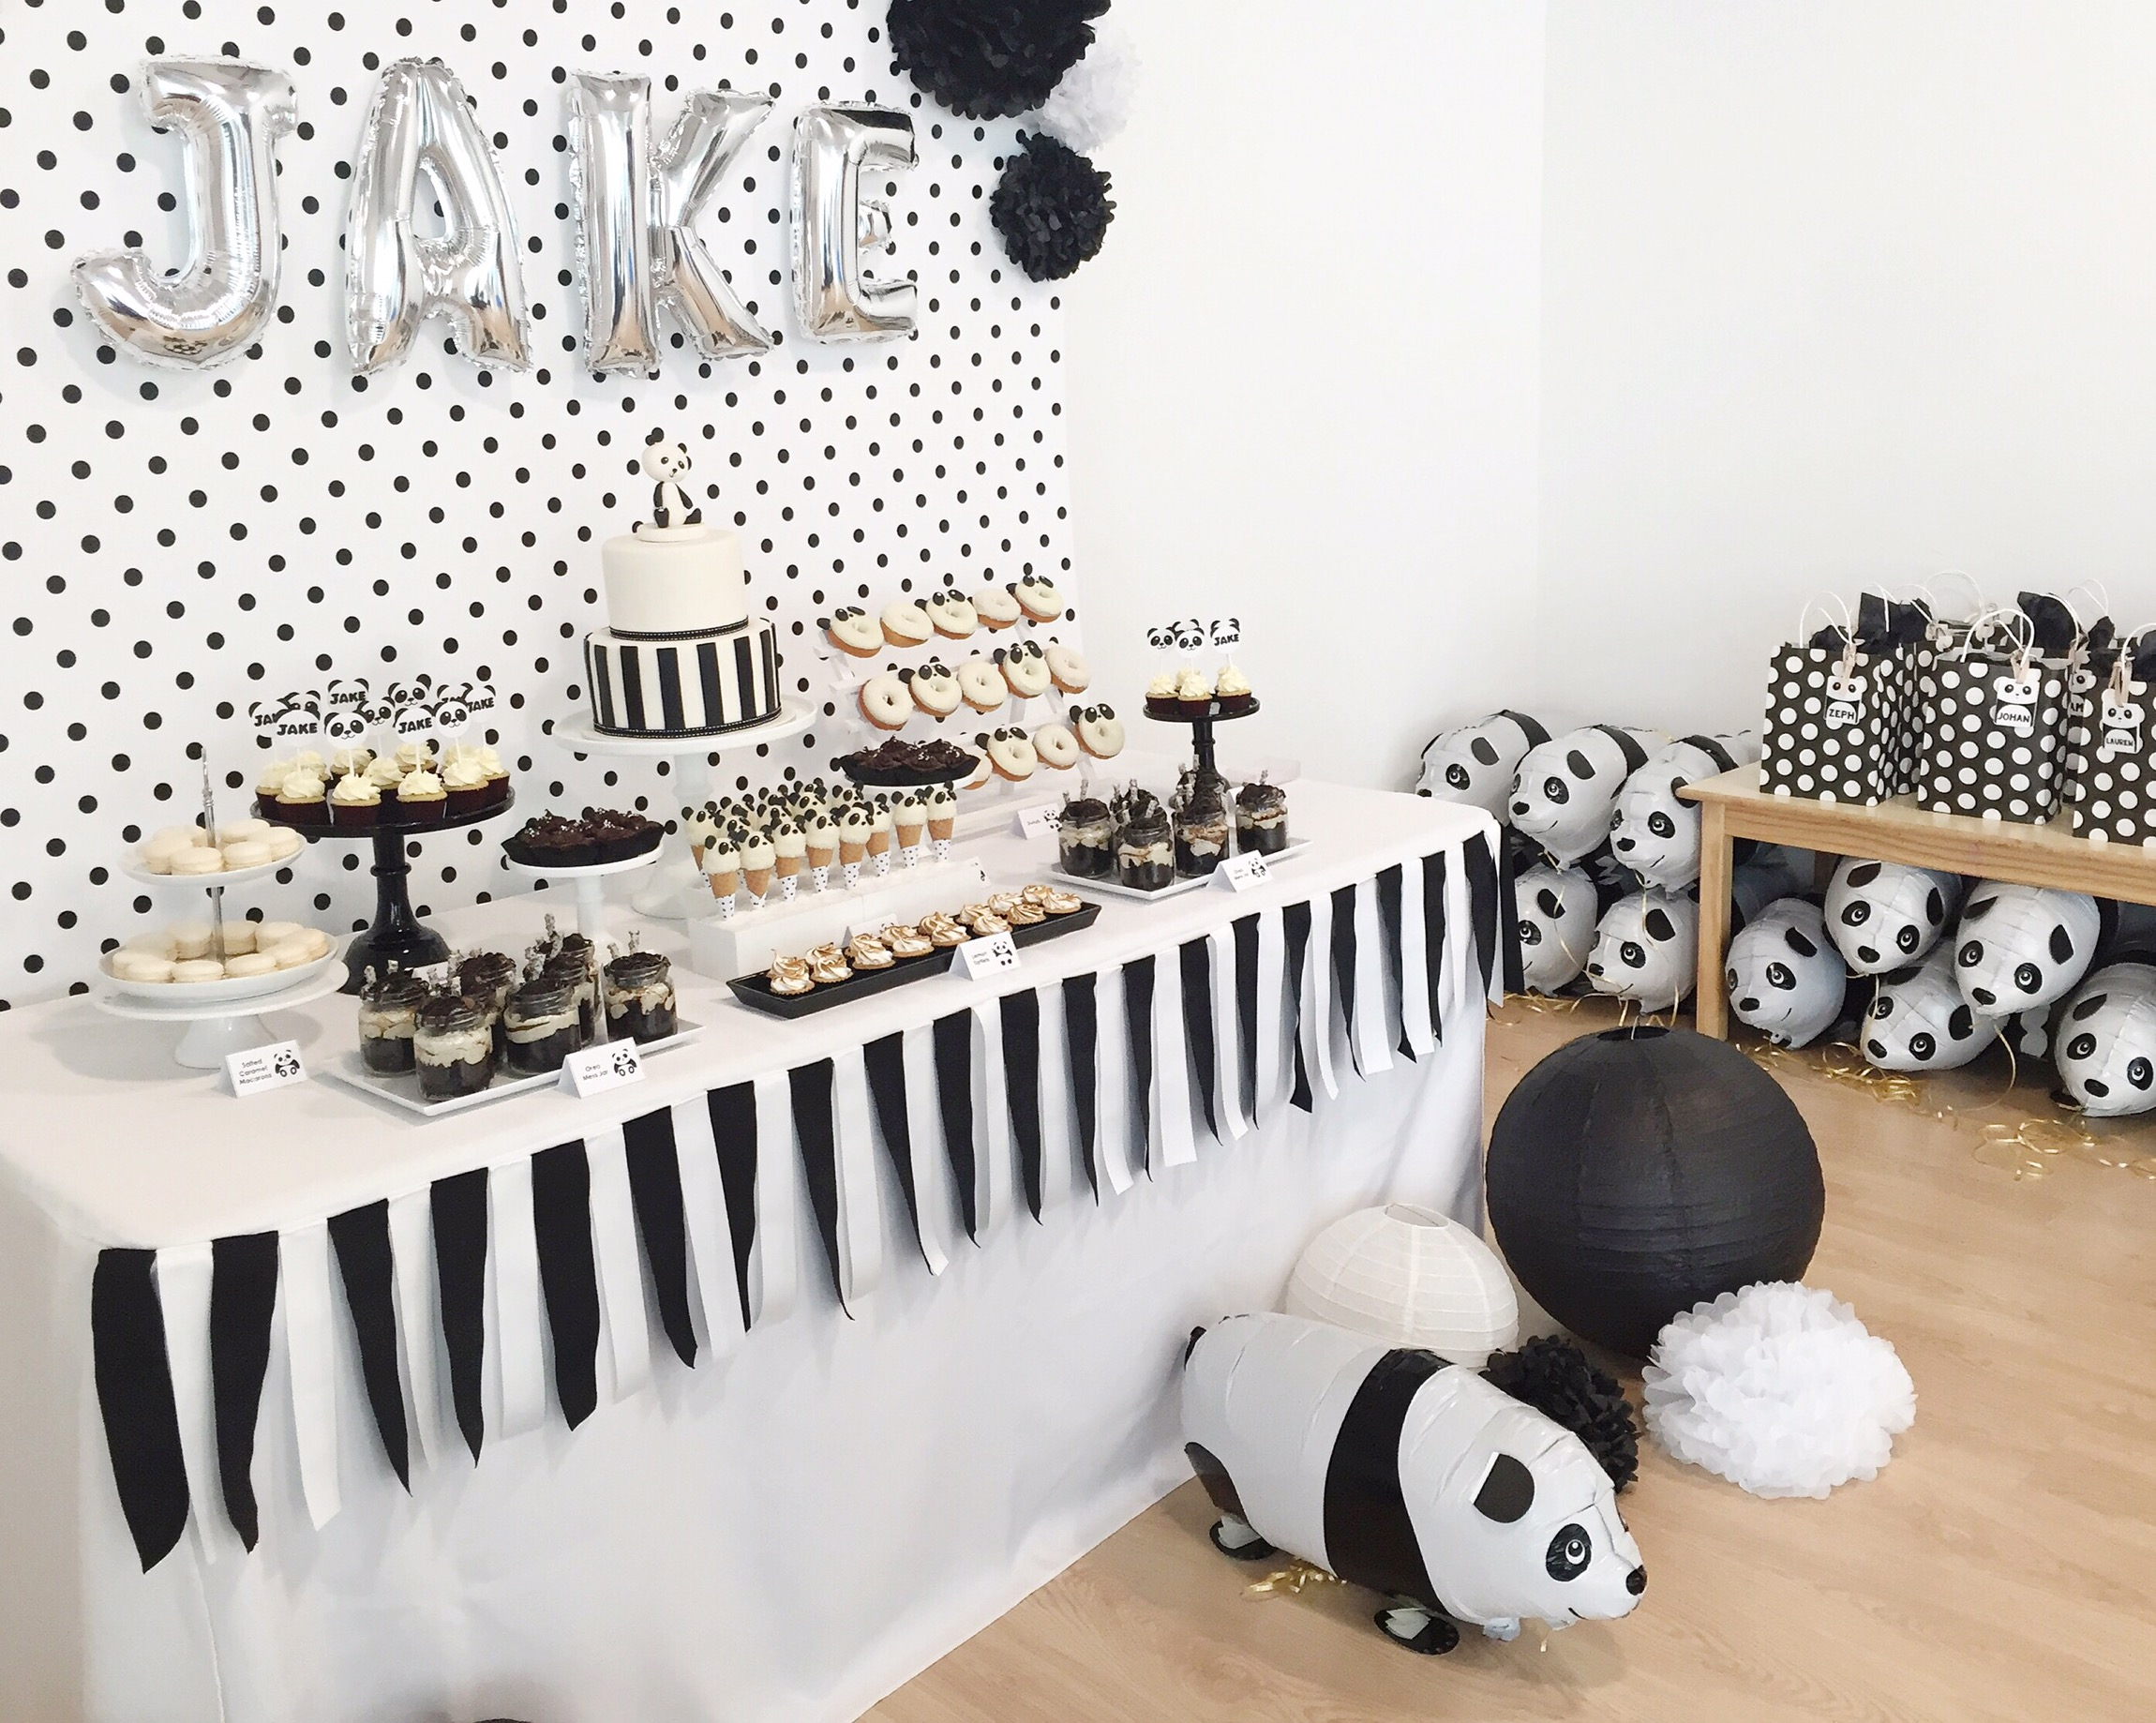 Party Planning Tips From A Seasoned Party Planner For A First